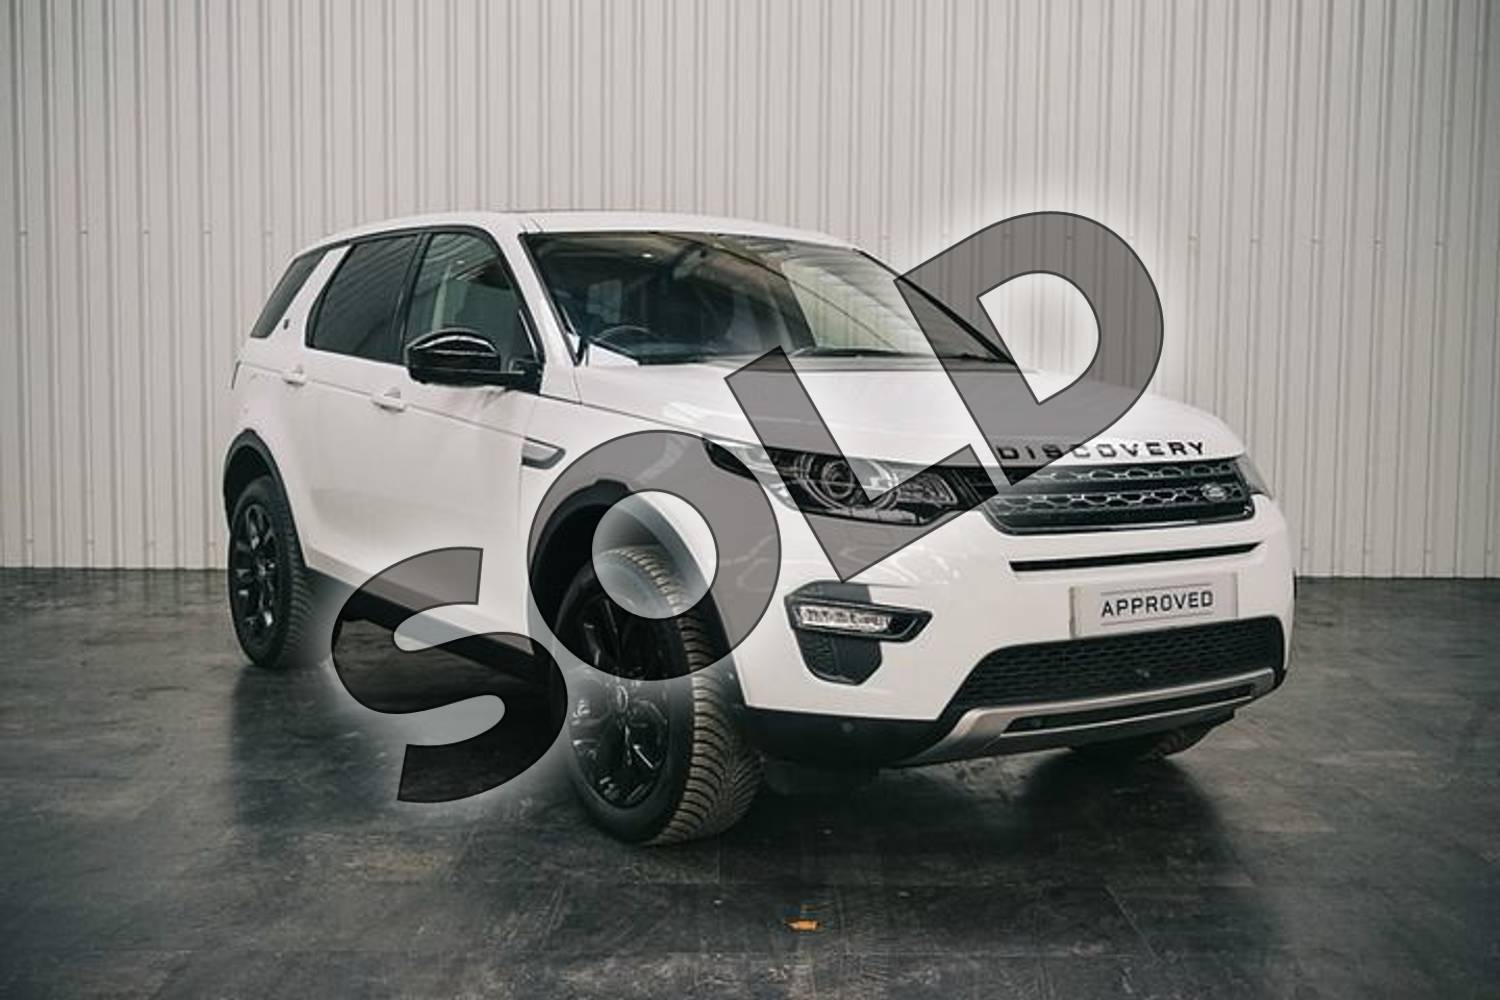 2017 Land Rover Discovery Sport Diesel SW 2.0 TD4 180 HSE 5dr Auto in Fuji White at Listers Land Rover Solihull